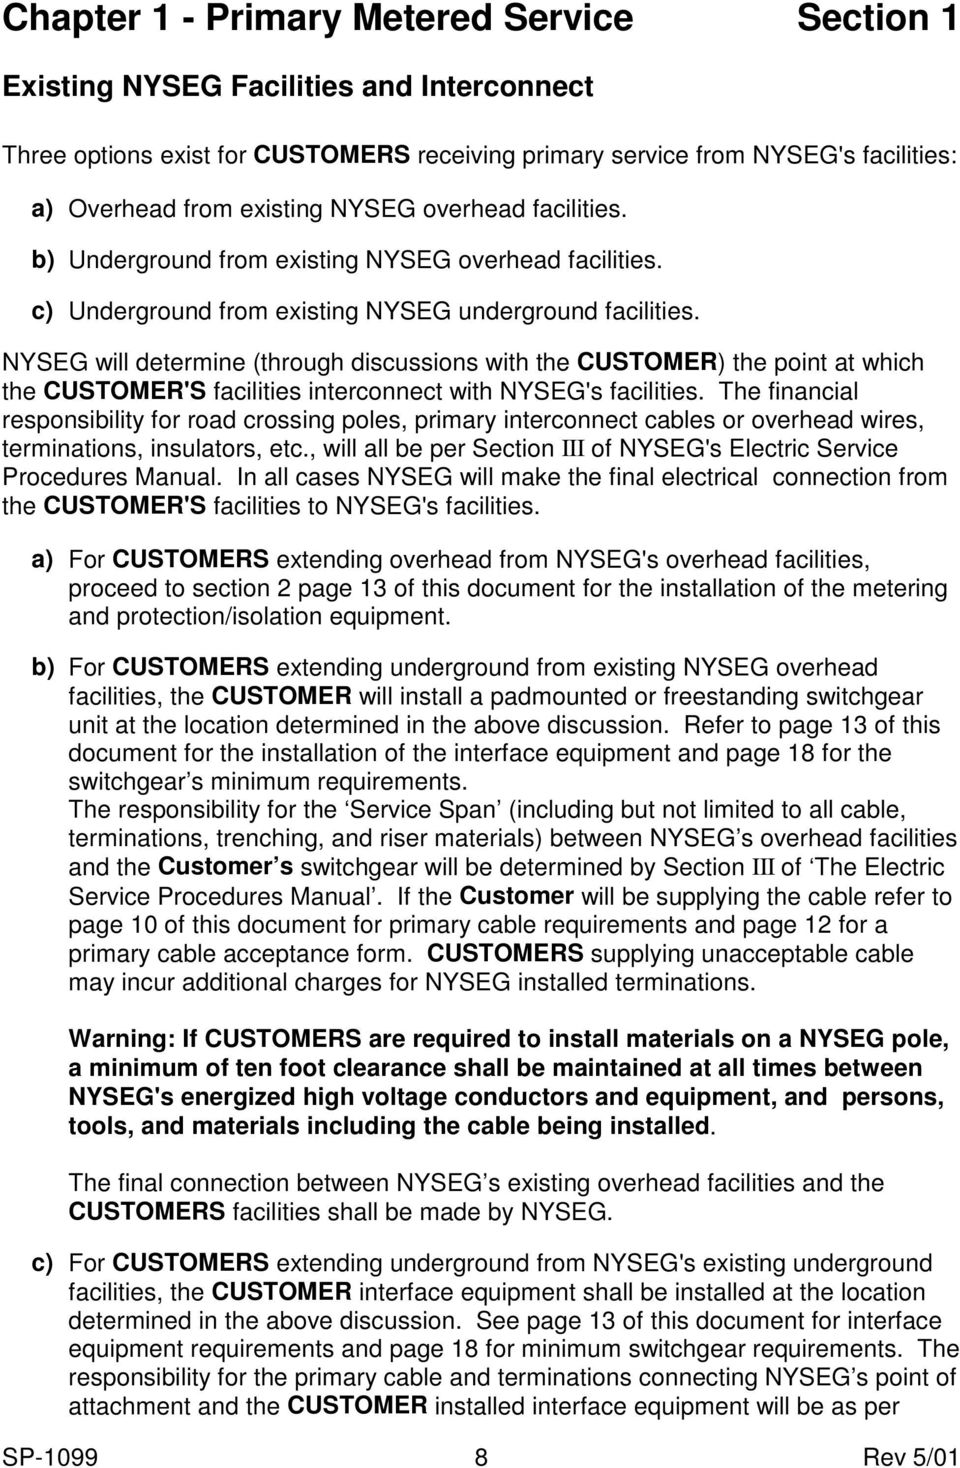 24 Kv To 345 Sp Pdf Section Three Electrical Installation Nyseg Will Determine Through Discussions With The Customer Point At Which Customers